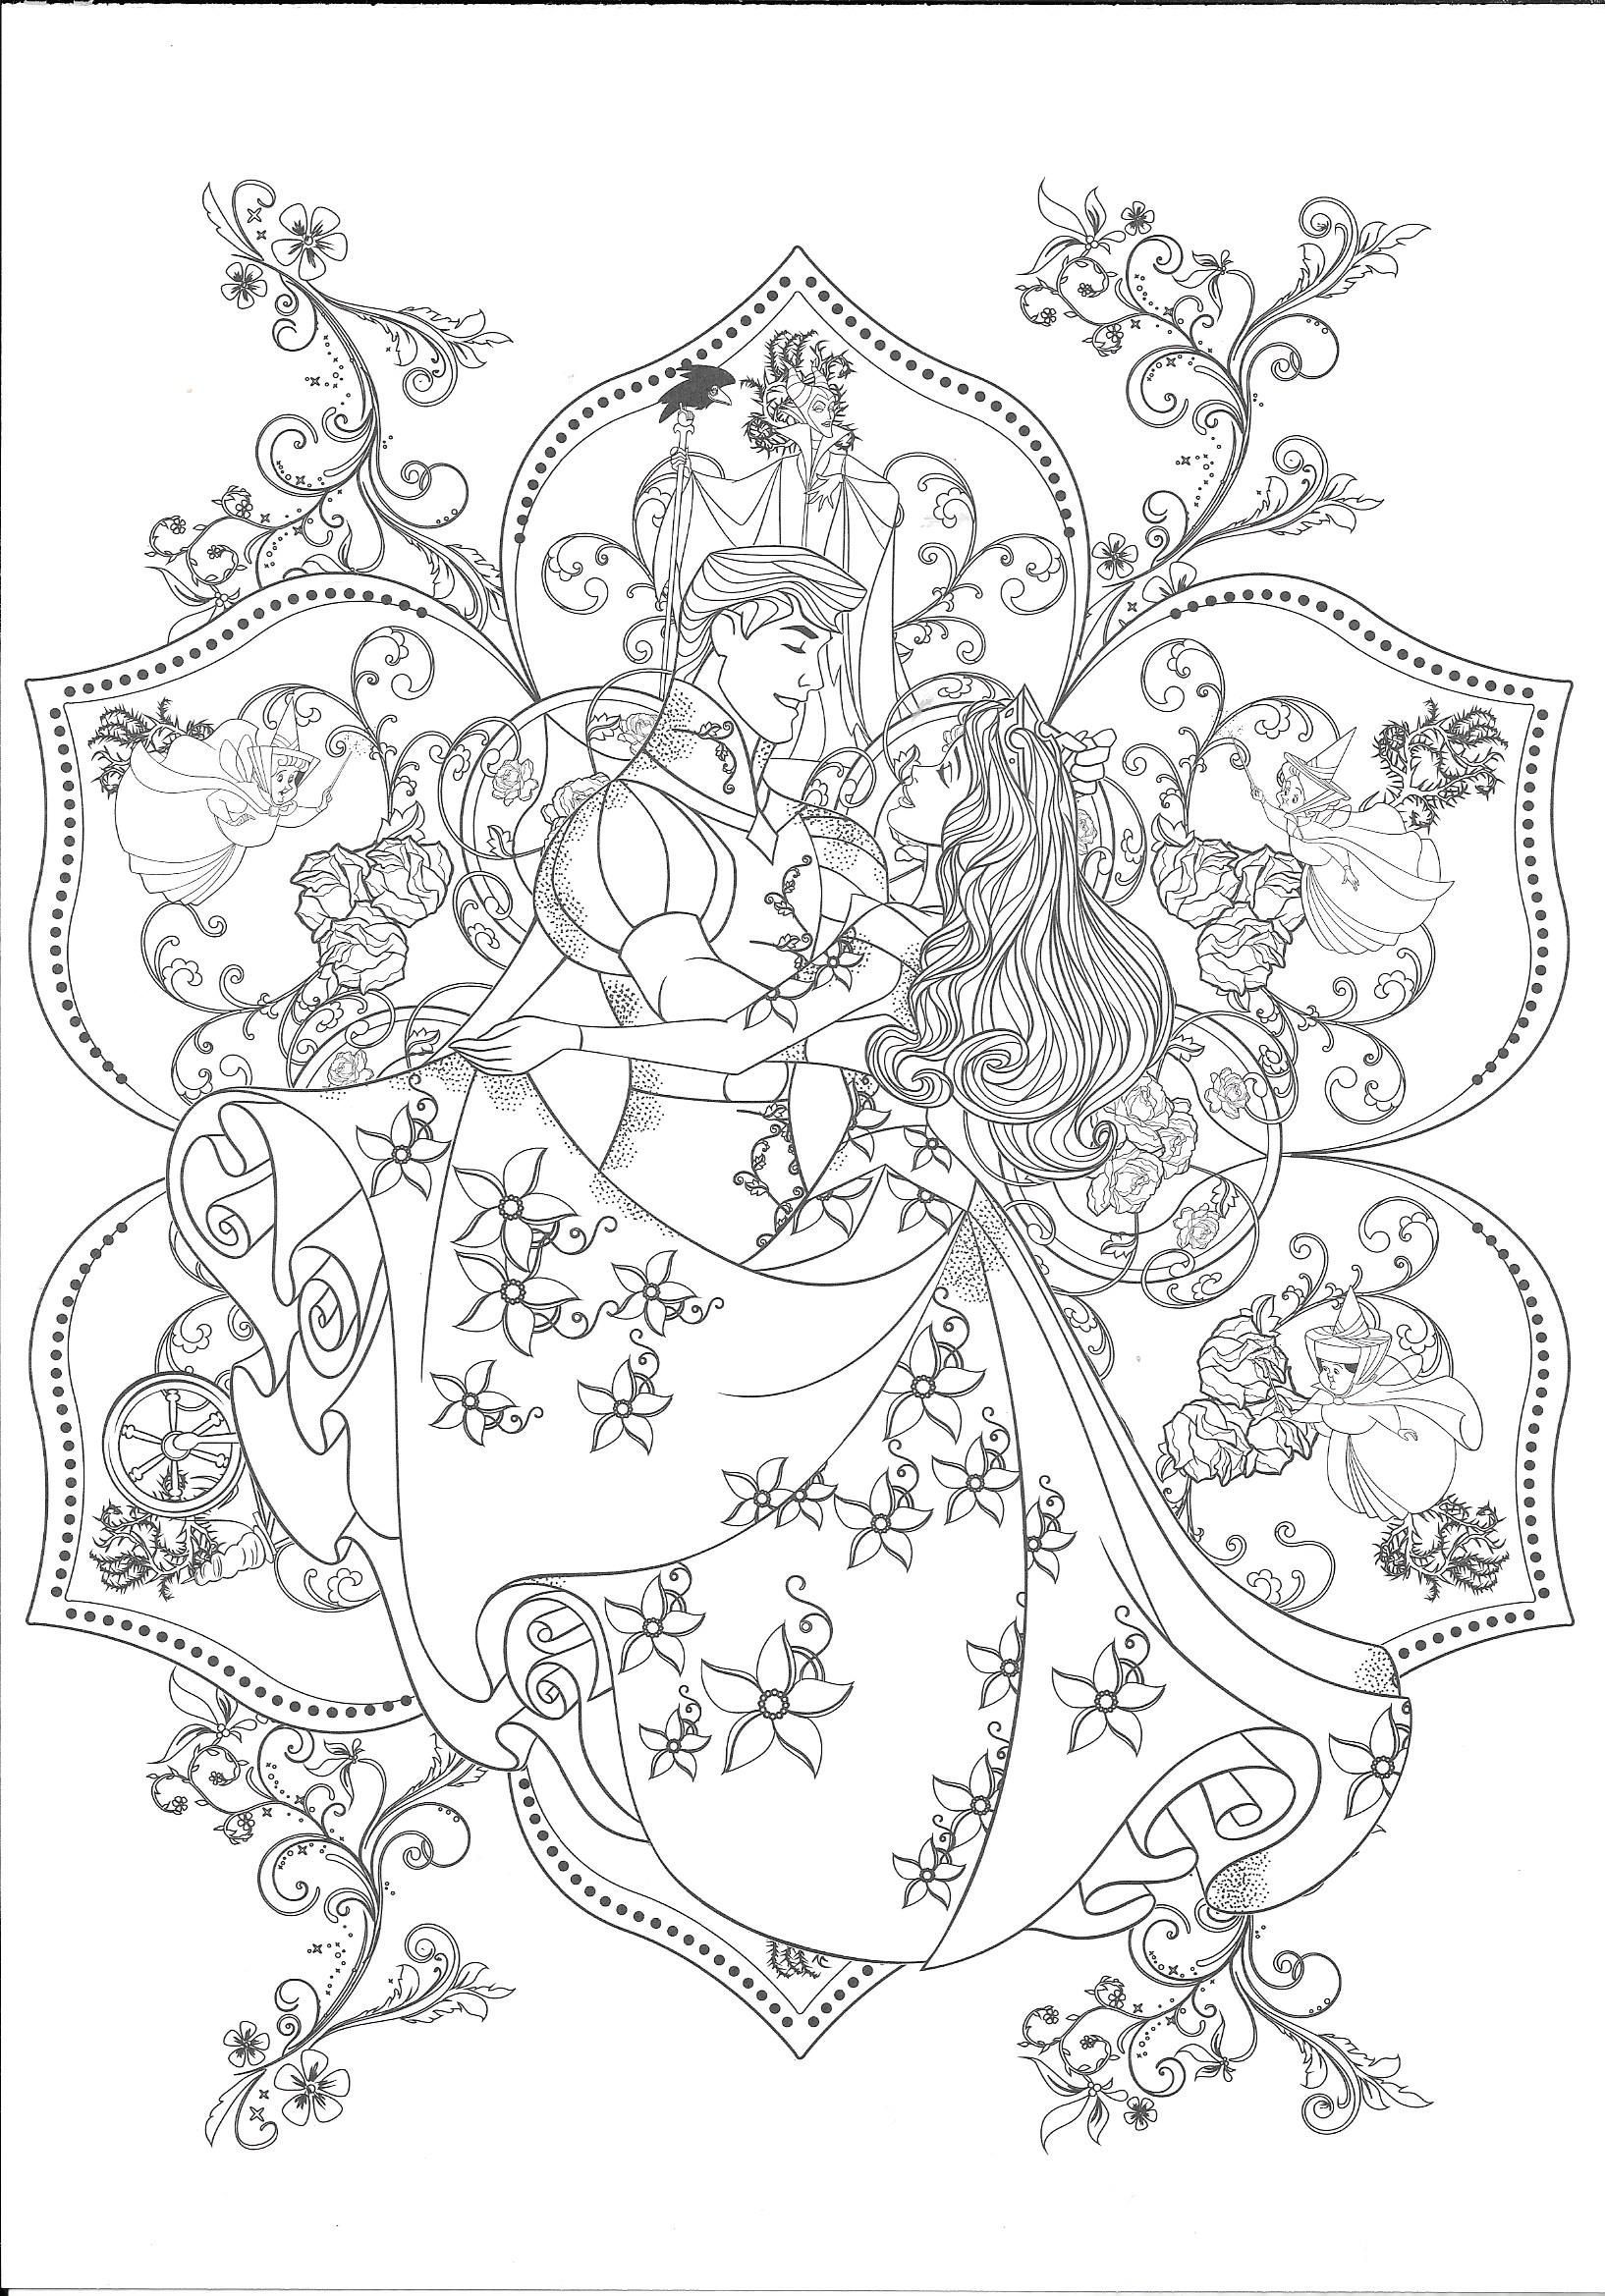 adultcoloringpages Disney coloring pages printables